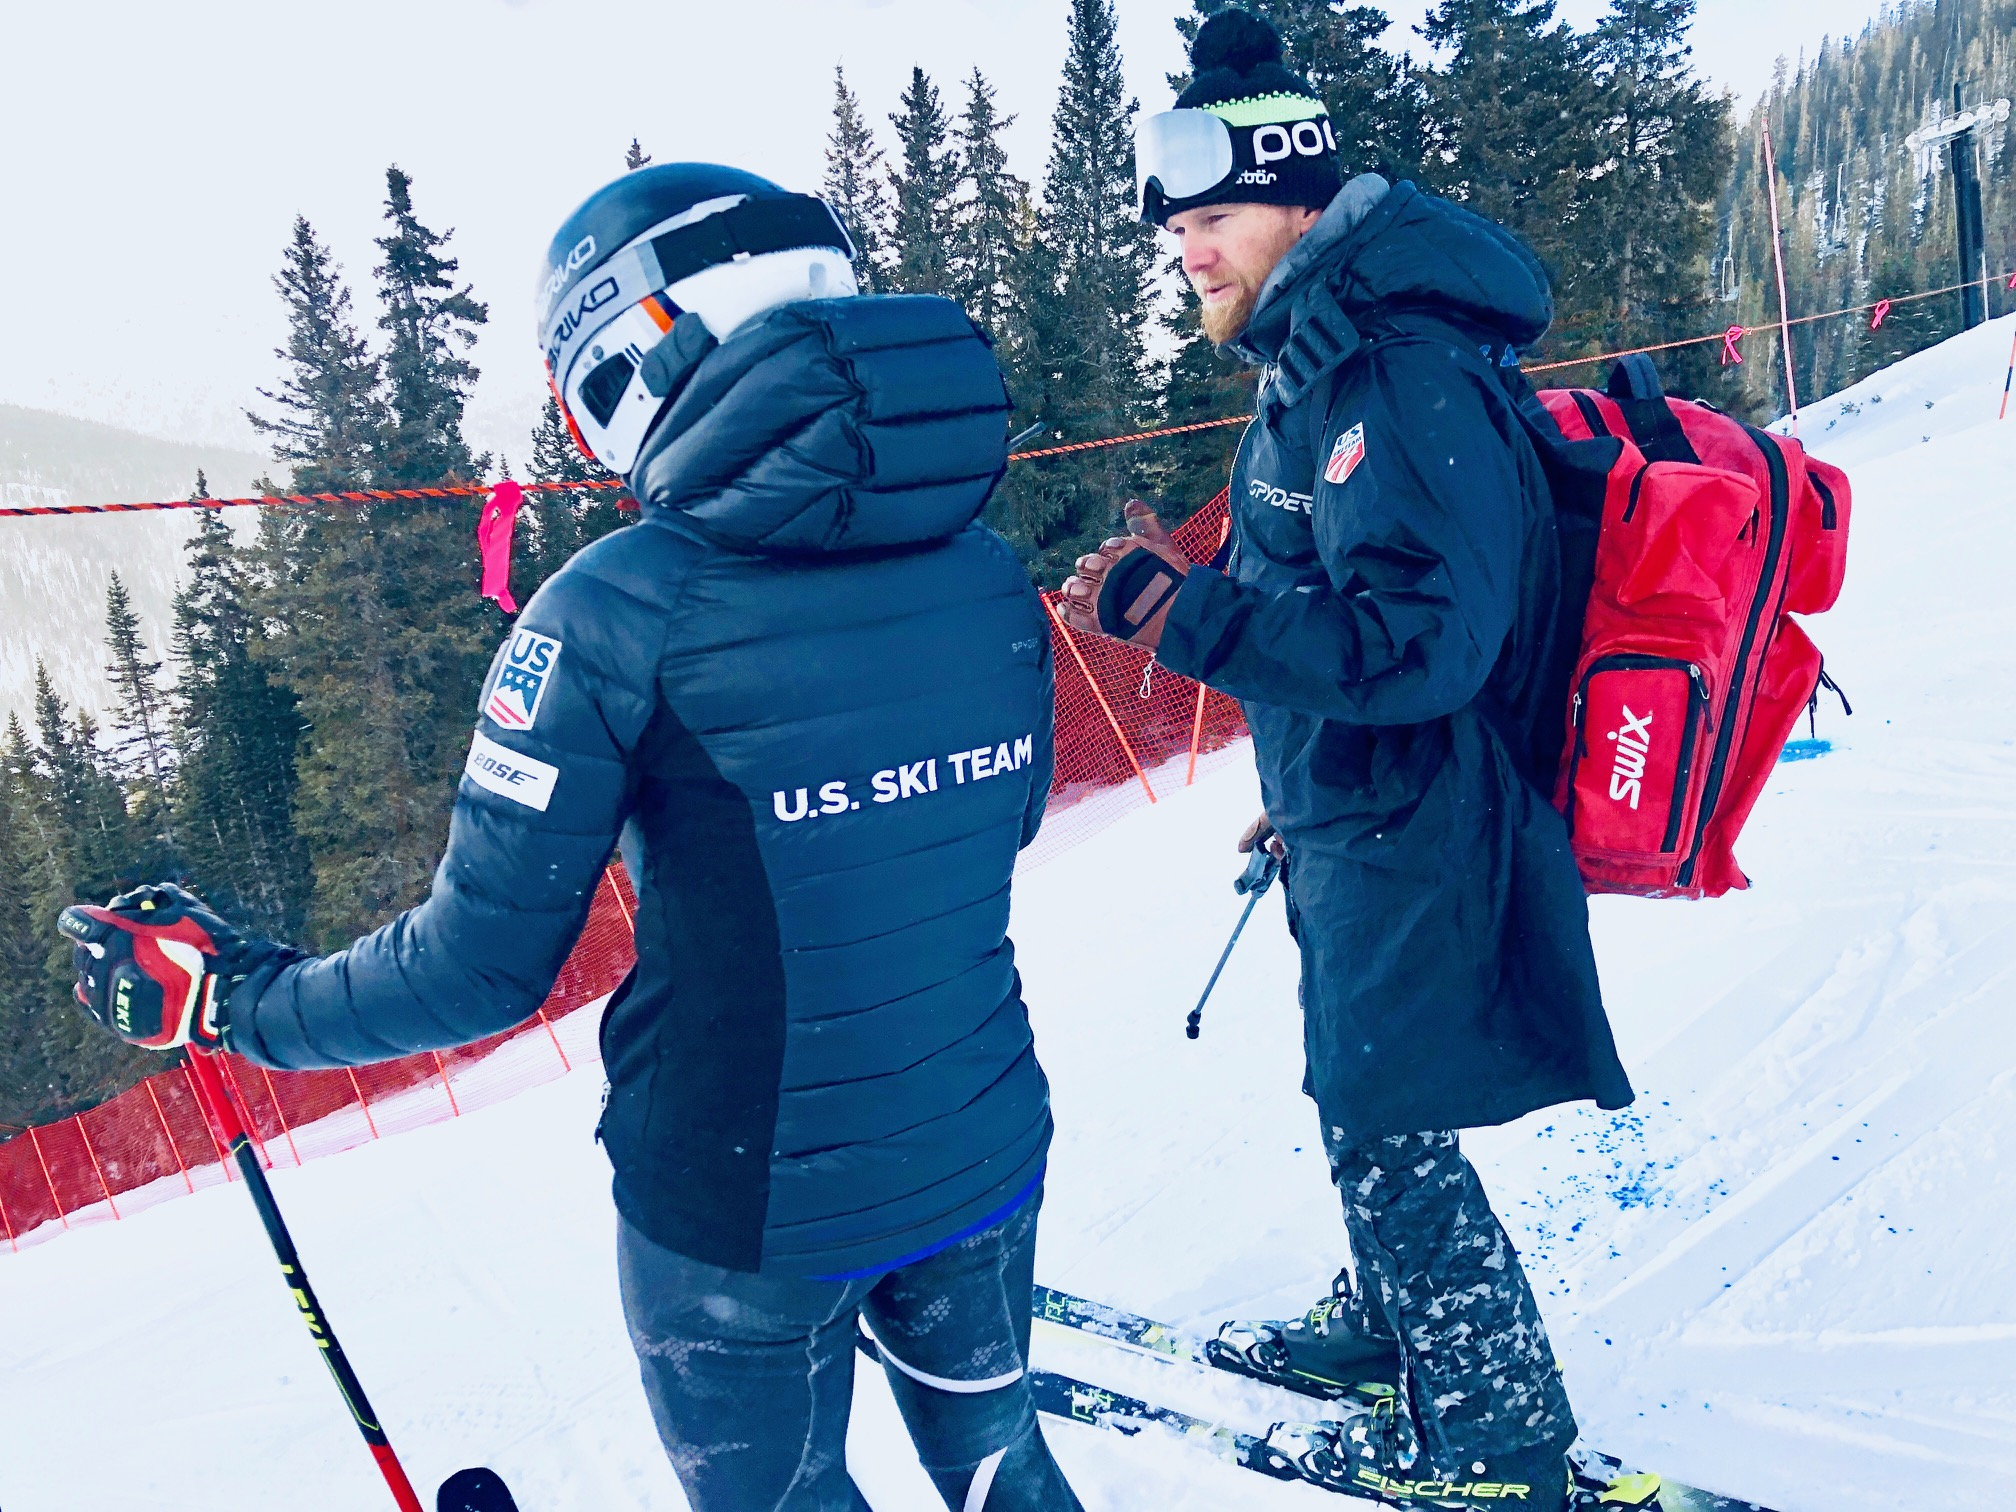 Rountree Williams make U.S. Ski Team